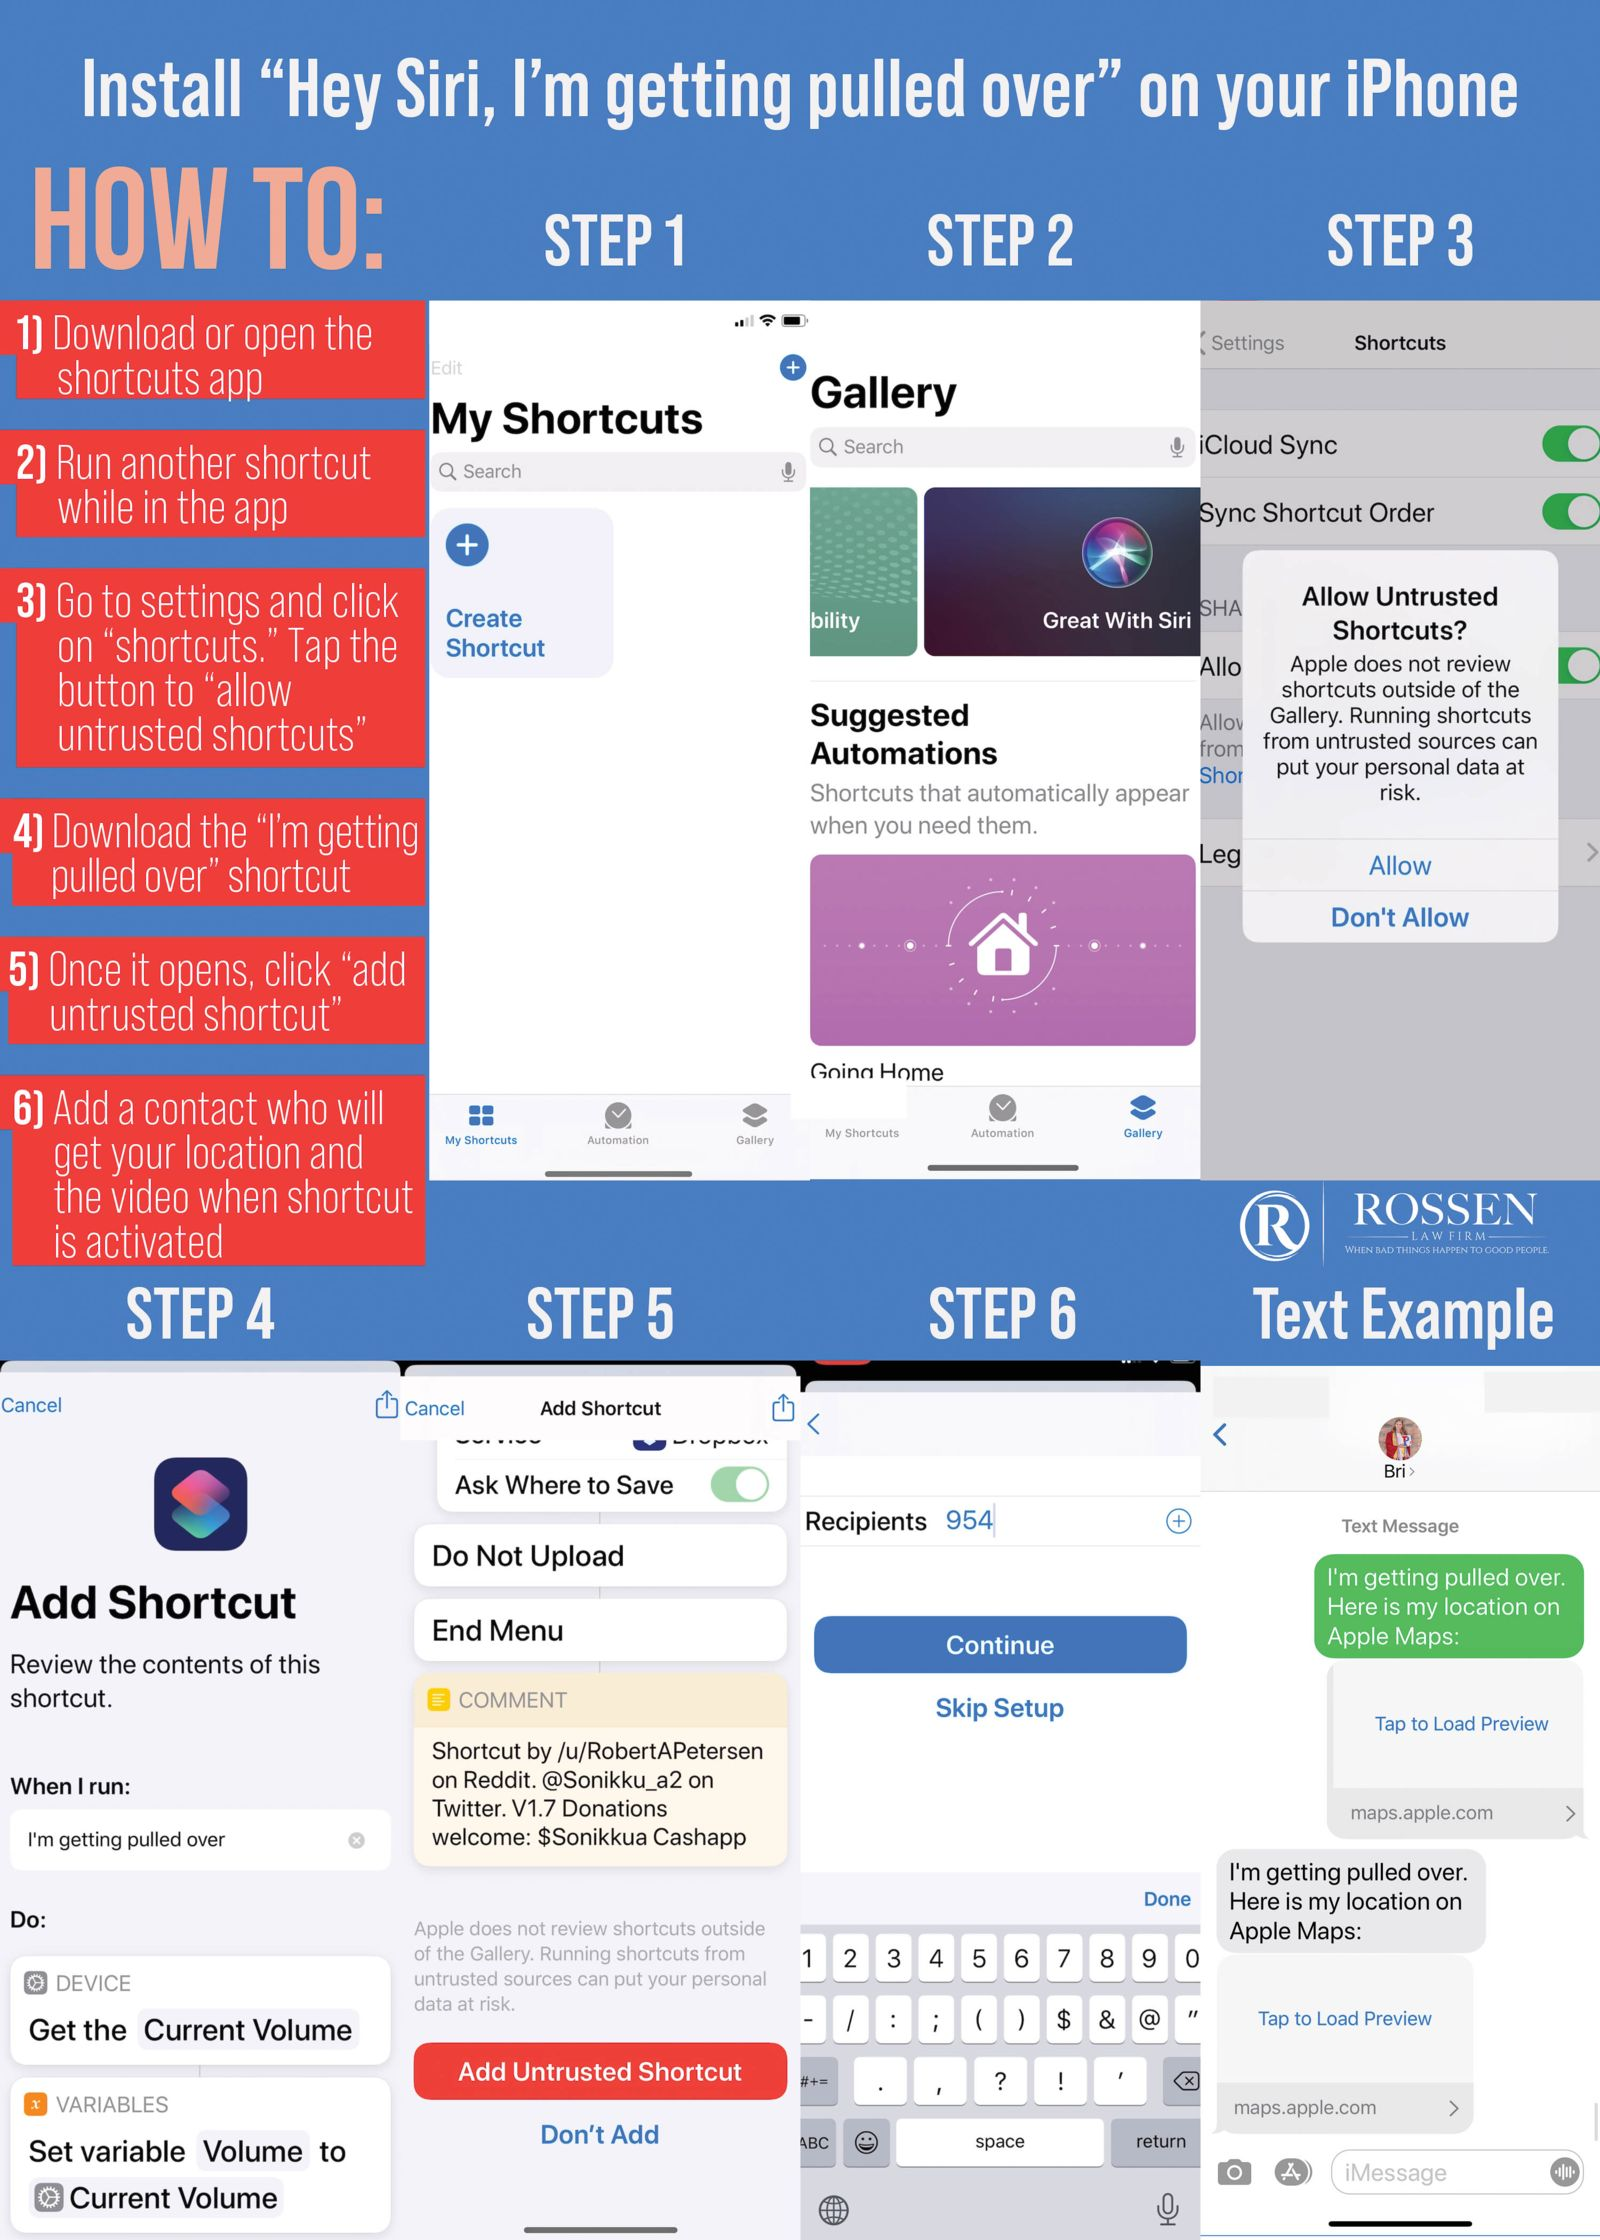 """Instructions on how to record police when pulled over by saying """"Hey, Siri, I'm getting pulled over."""" The infographic explains the steps to down load the shortcut to record the police automatically"""